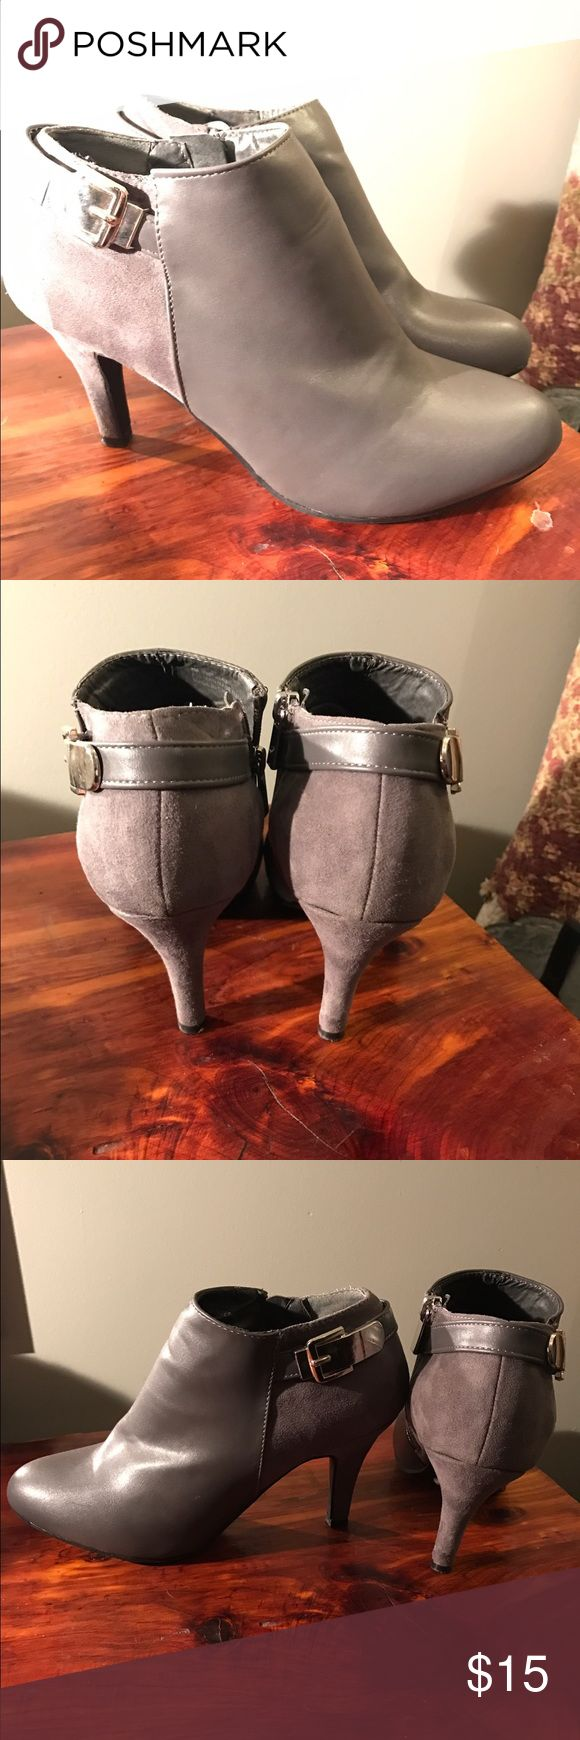 Grey high heels Only worn one time. Size 9. Light grey so they go with almost anything! Almost brand new! Make me an offer! Shoes Heels